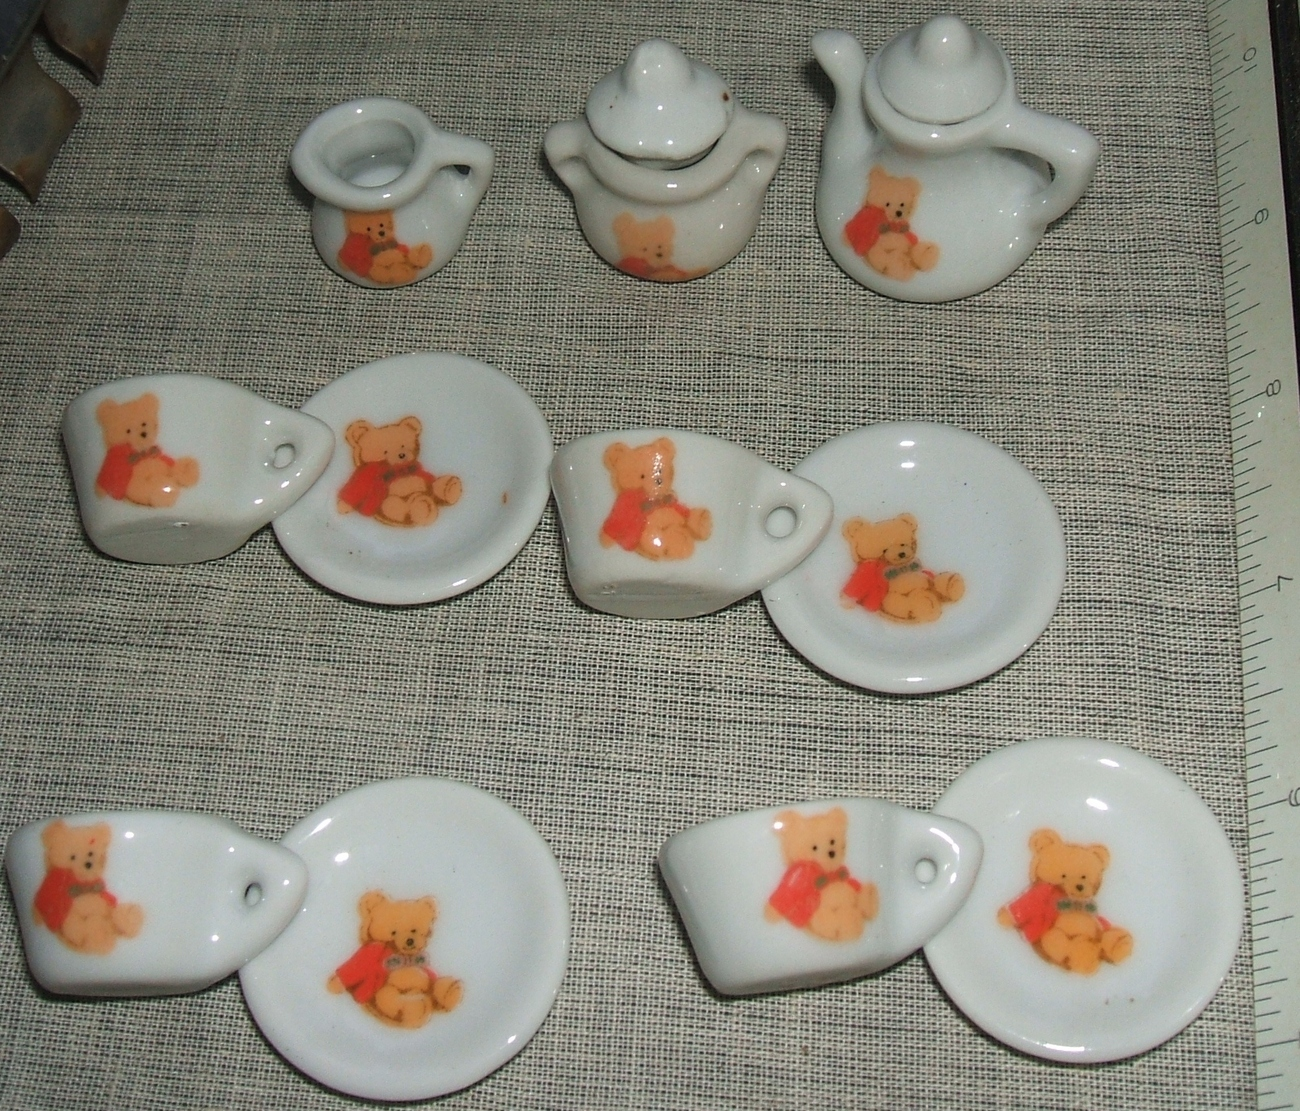 Miniature Teddy Bear Battat China Children's Pretend Play Tea Party 13-Piece Set